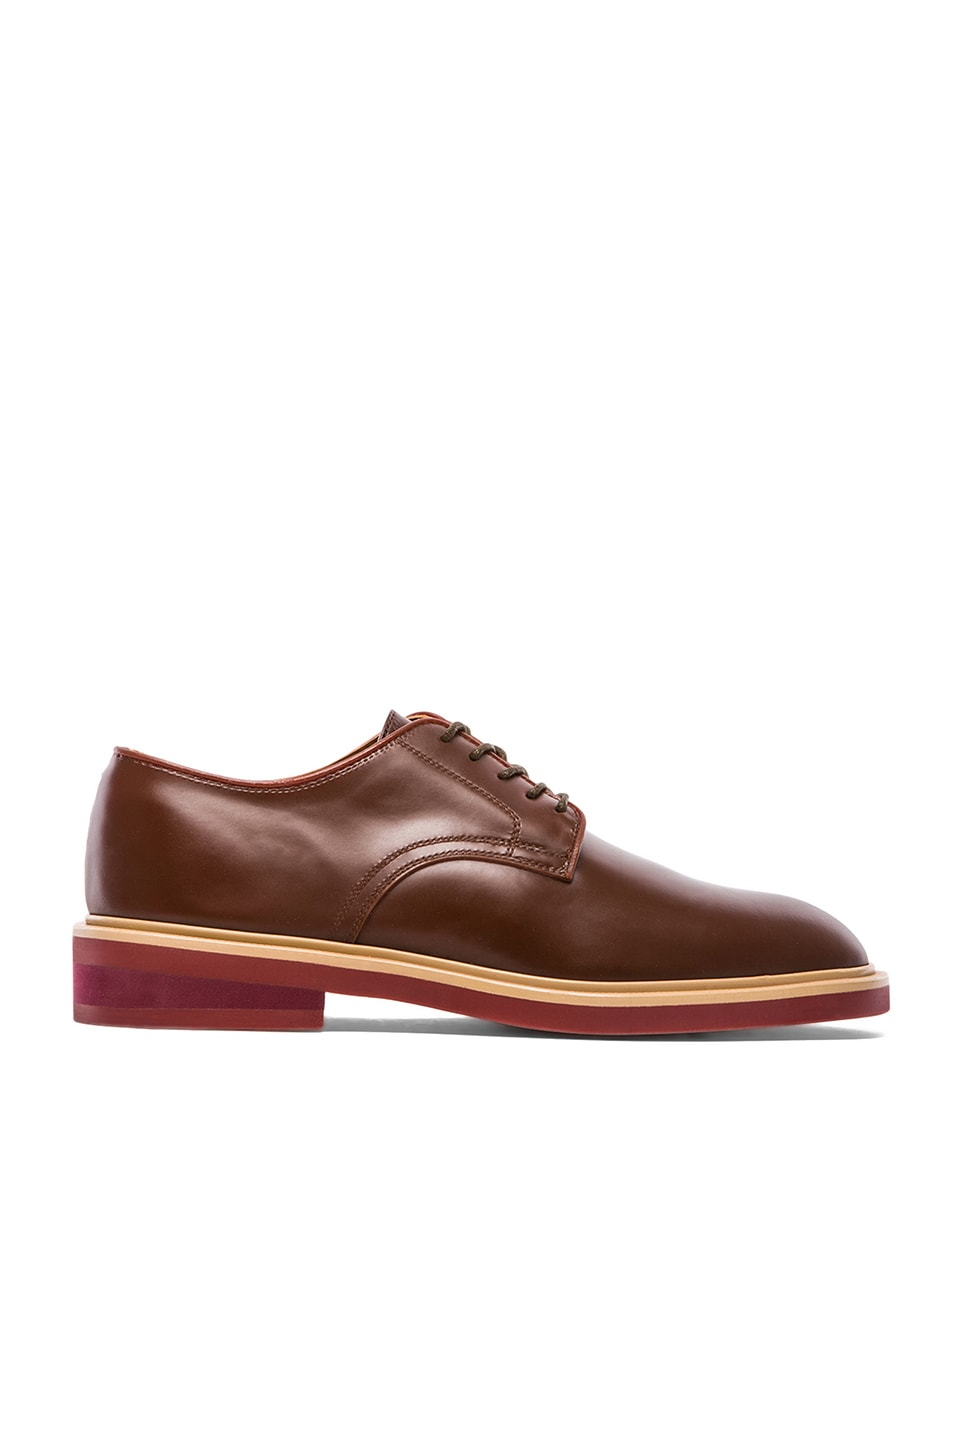 Rain Man Barry Shoe in Dark Brown & Beige & Bric